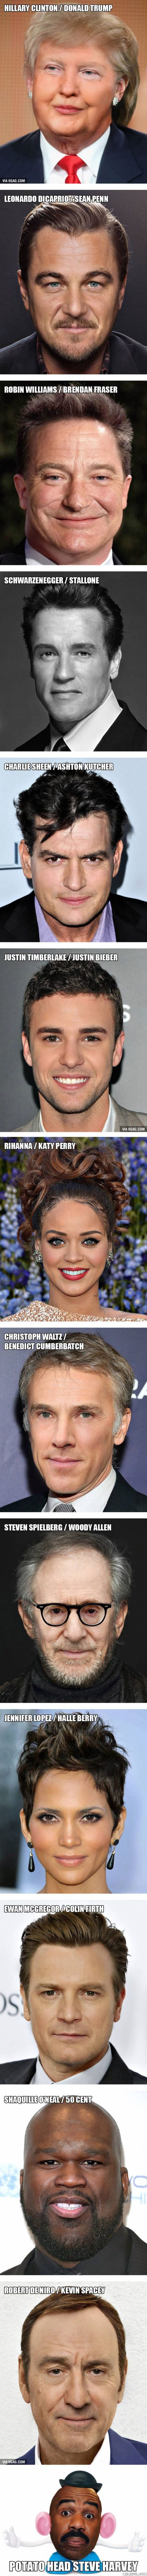 Combined Celebrity Faces